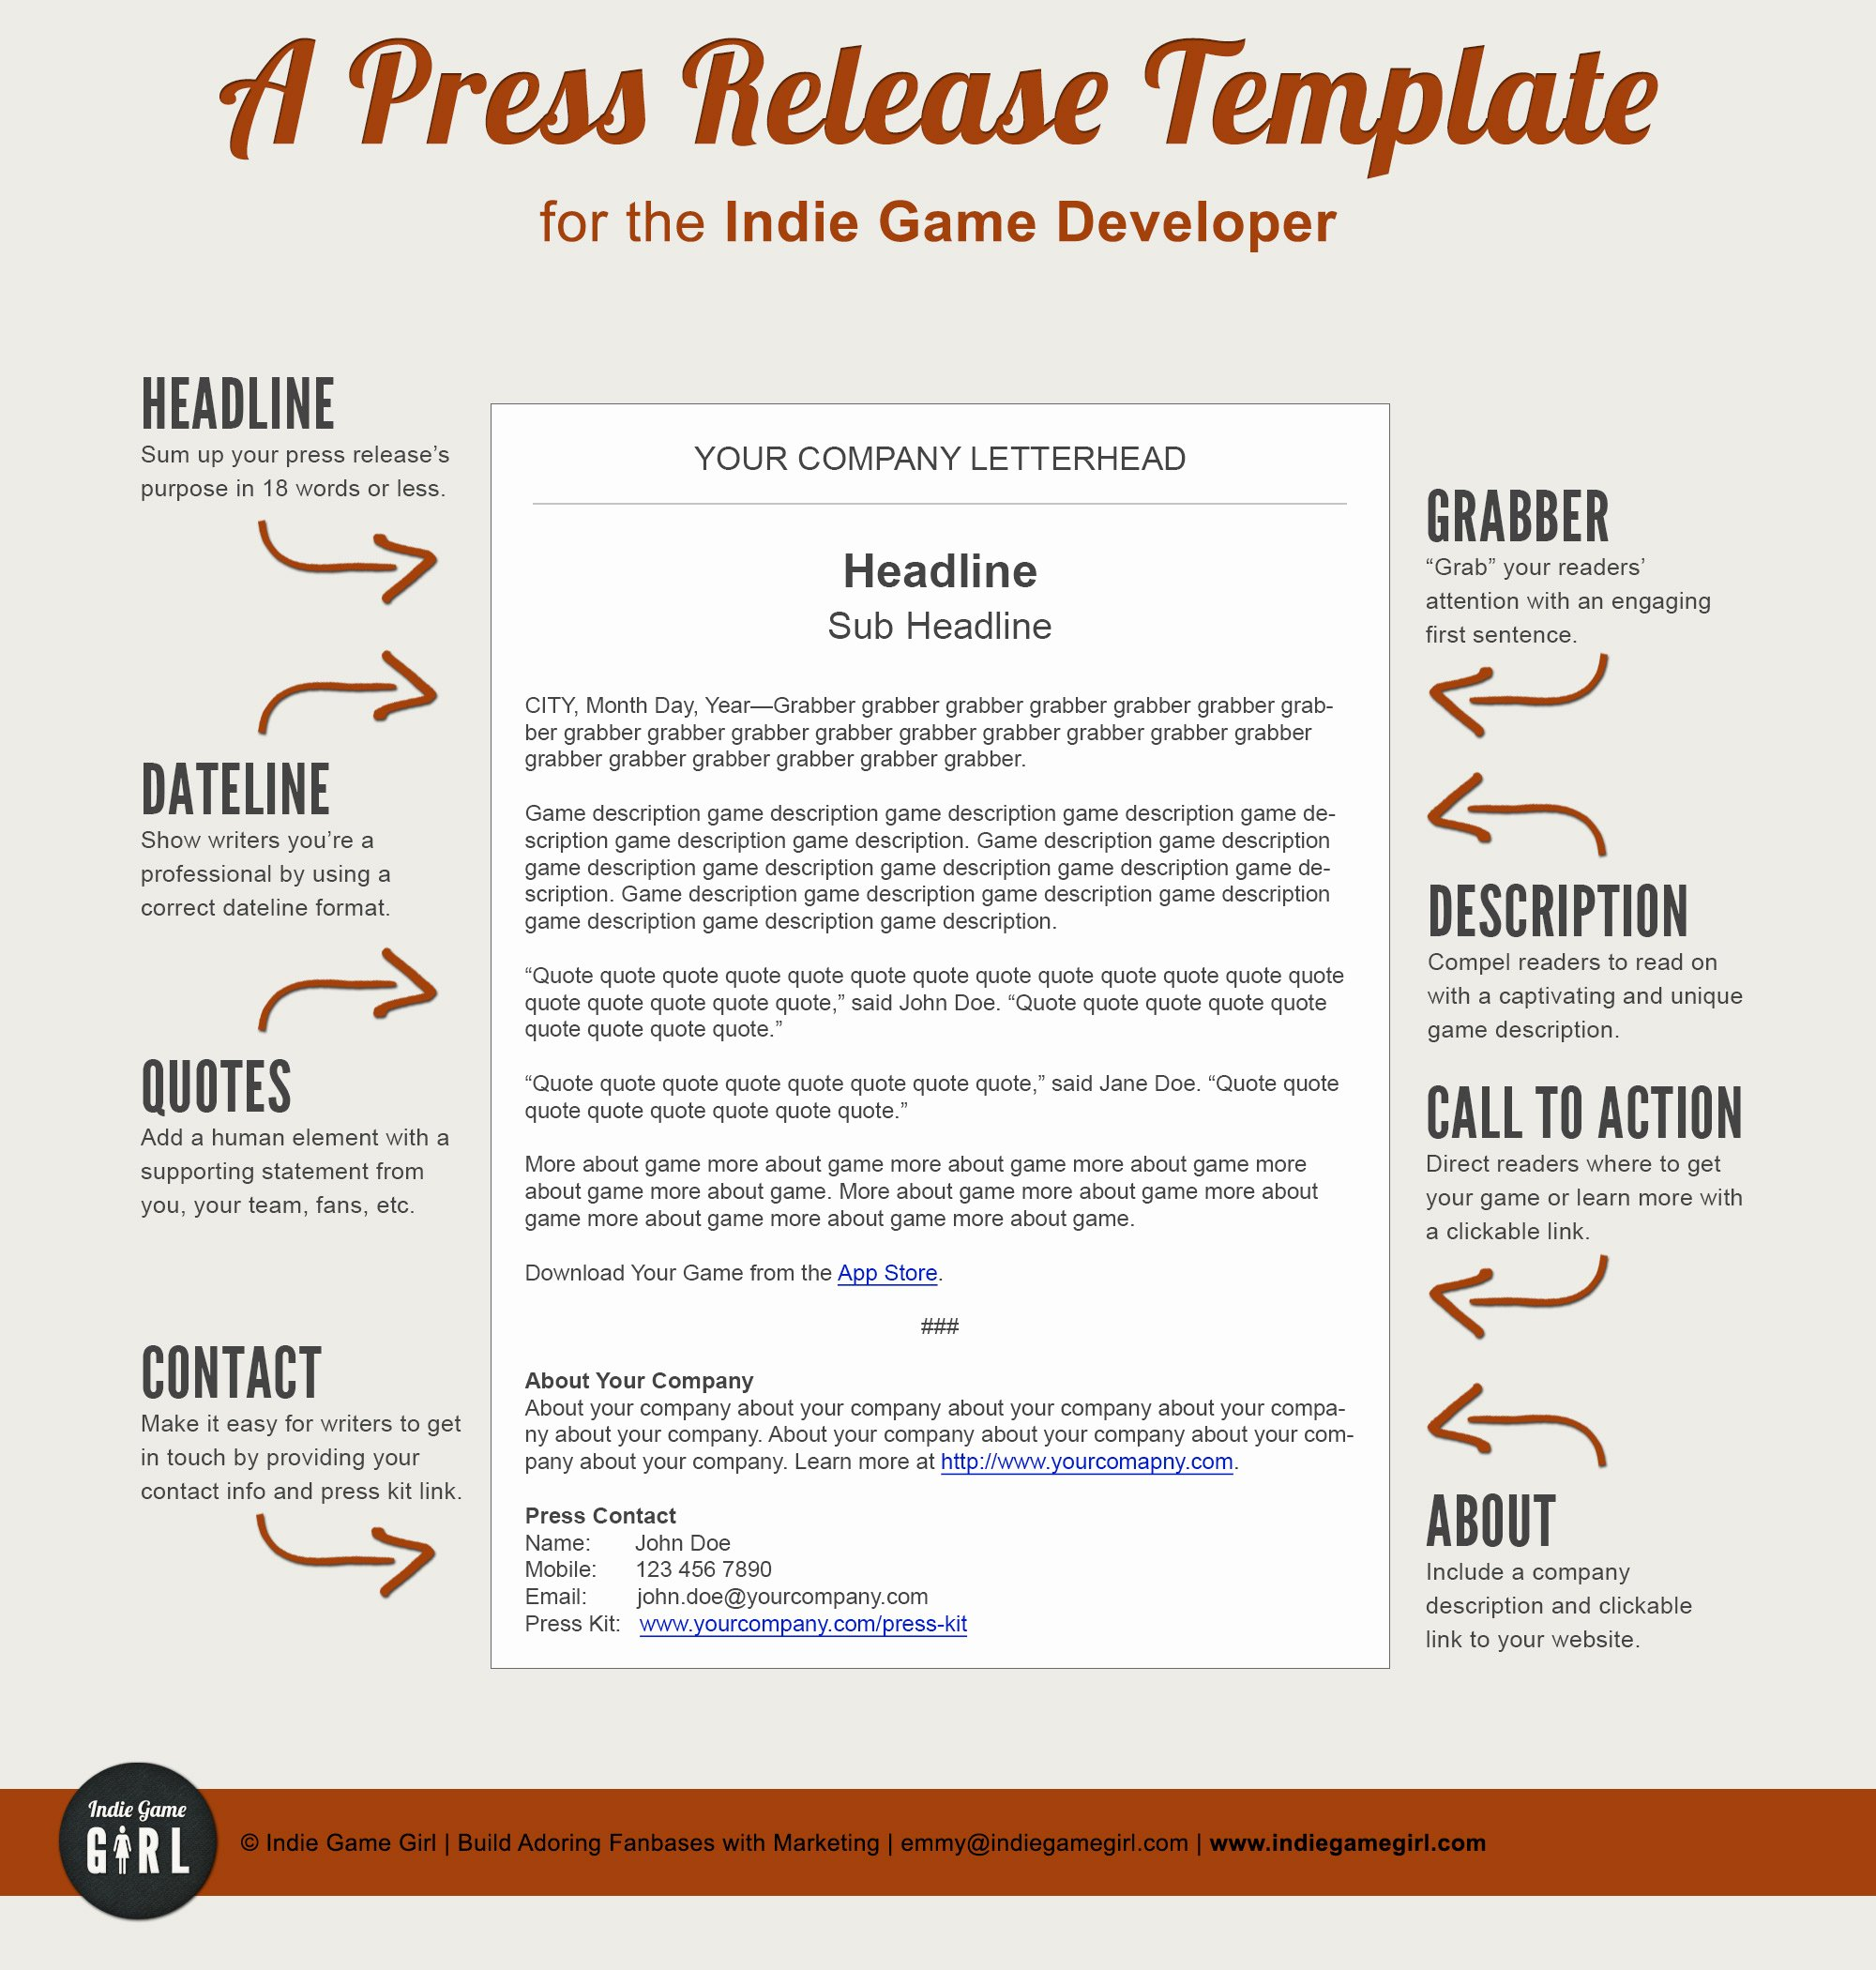 Press Release format Template Elegant A Press Release Template Perfect for the In Game Developer